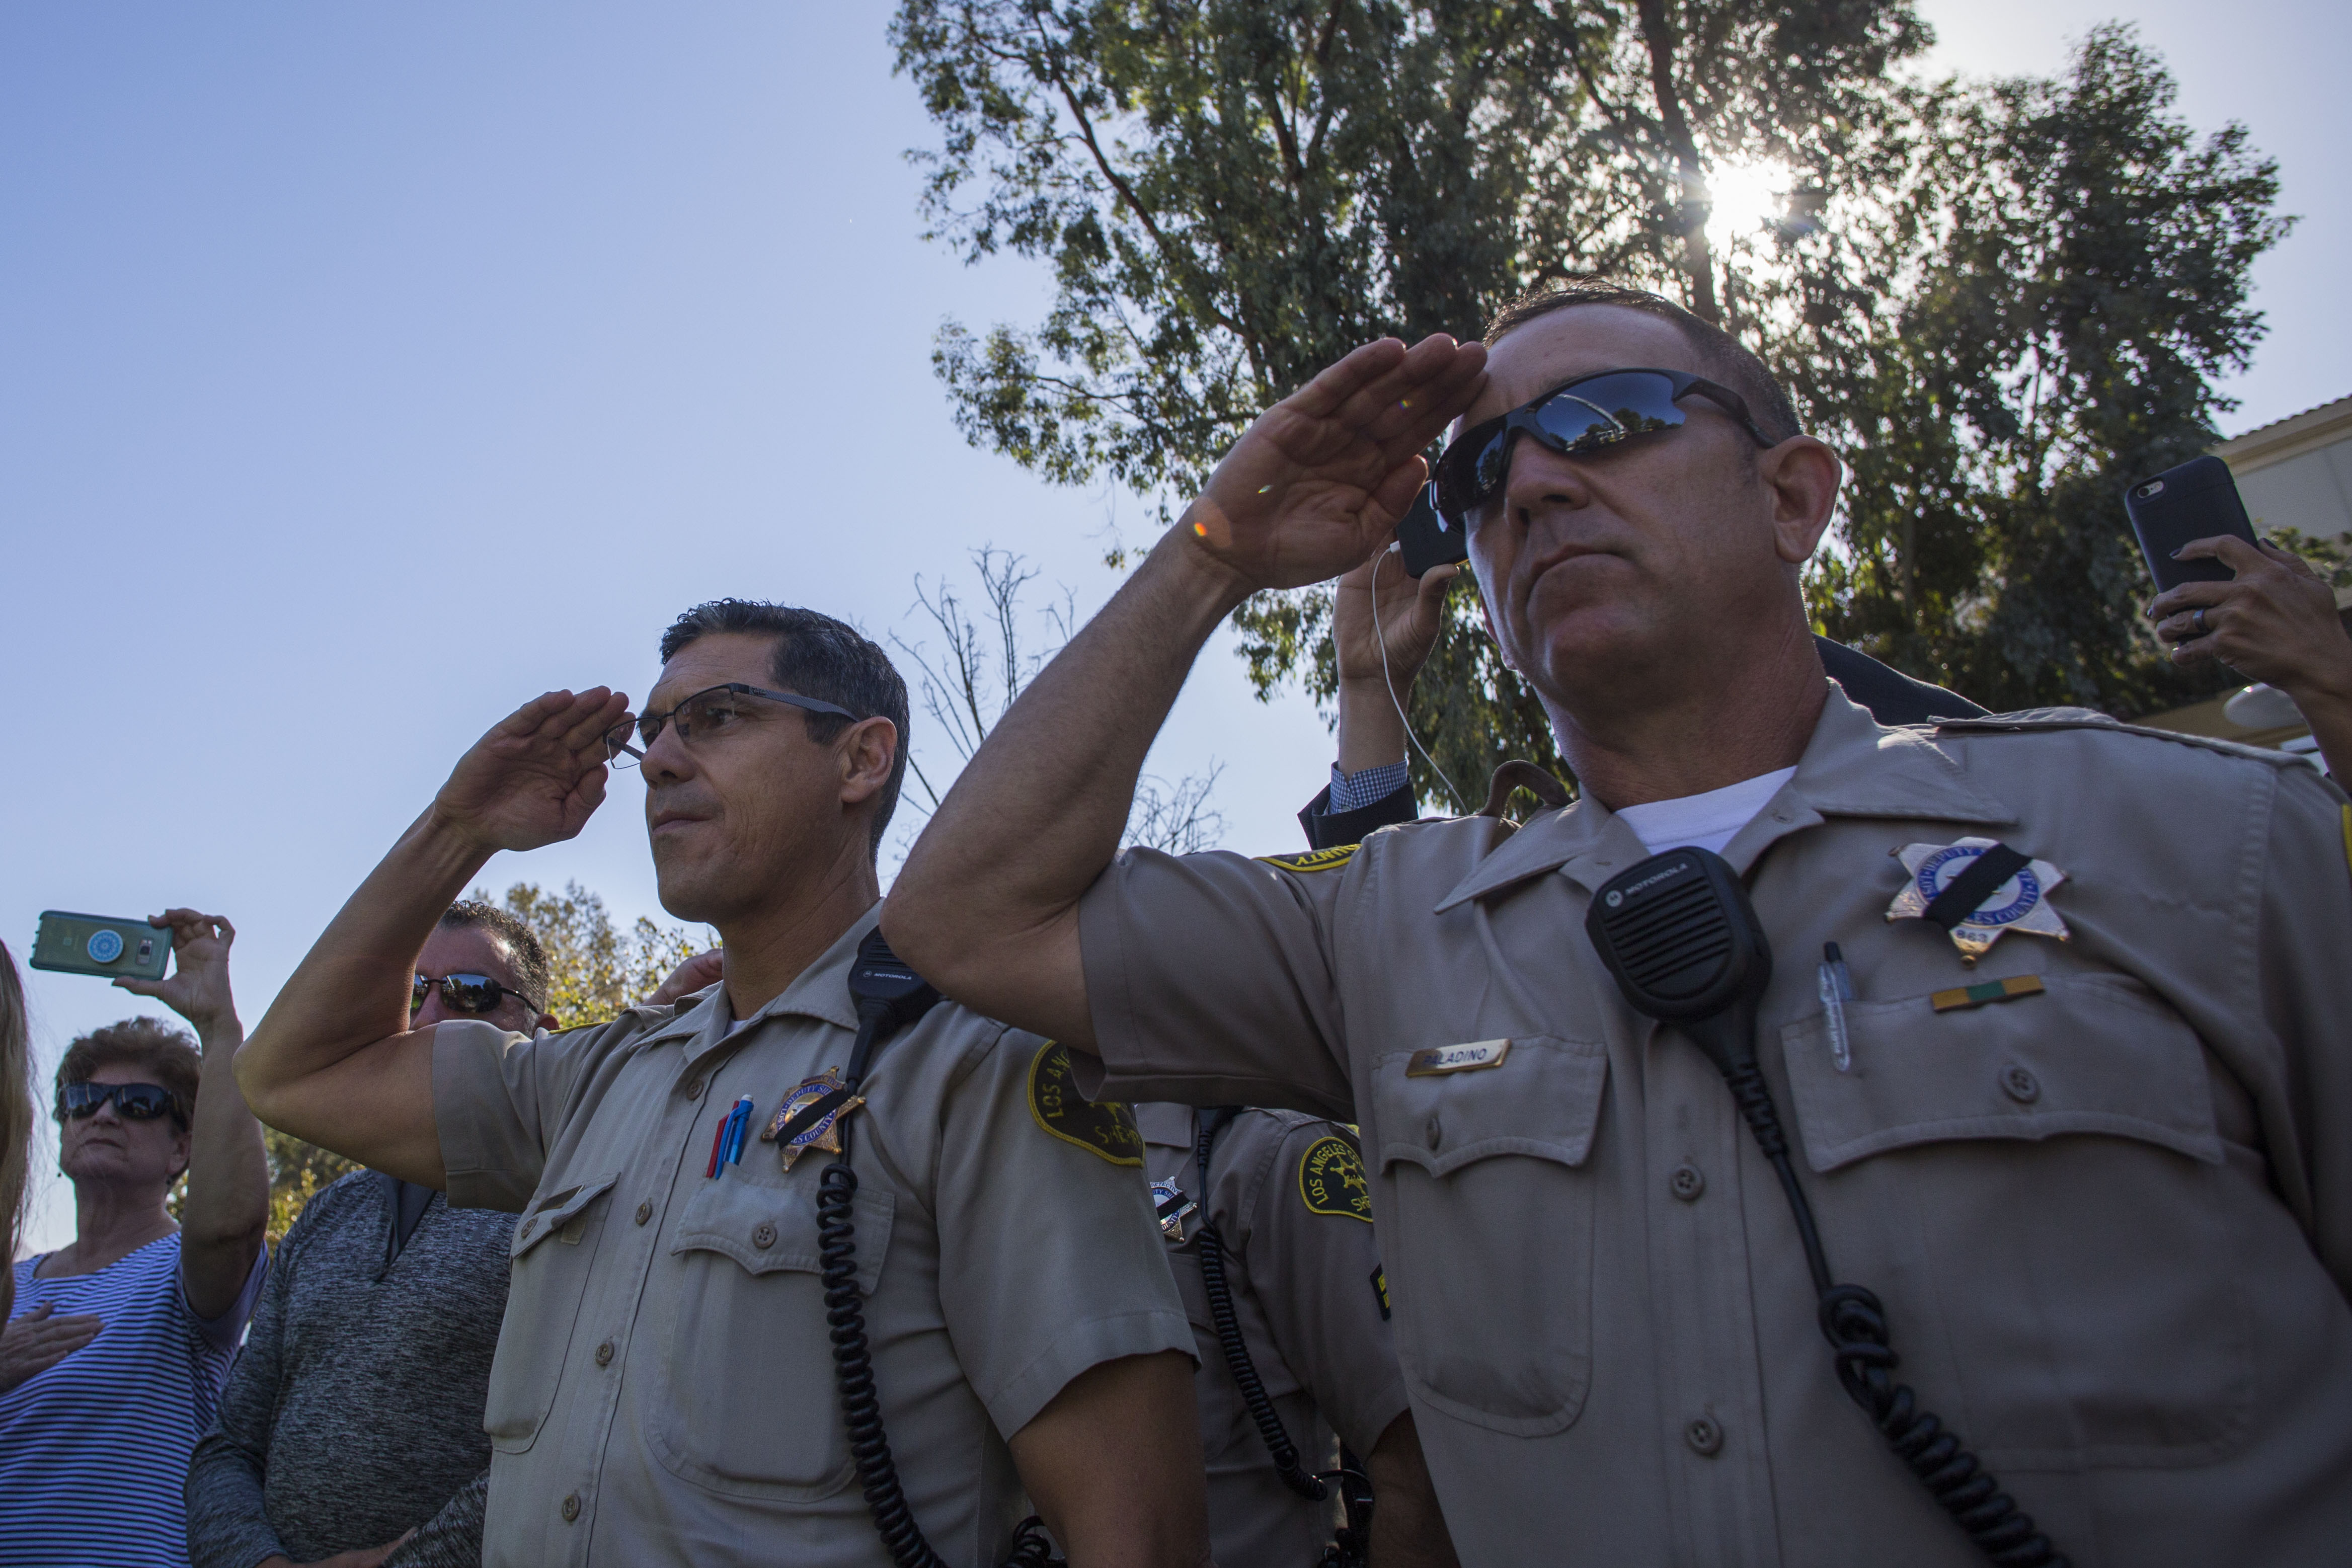 Police stand at attention as a motorcade carrying Ventura Country sheriff Sgt. Ron Helus, who was killed in a shooting at Borderline Bar the night before, passes by outside the Los Robles Medical Center in Thousands Oaks, California on November 8, 2018. - The gunman who killed 12 people in a crowded California country music bar has been identified as 28-year-old Ian David Long, a former Marine, the local sheriff said Thursday. The suspect, who was armed with a .45-caliber handgun, was found deceased at the Borderline Bar and Grill, the scene of the shooting in the city of Thousand Oaks northwest of downtown Los Angeles. (APU GOMES/AFP/Getty Images)